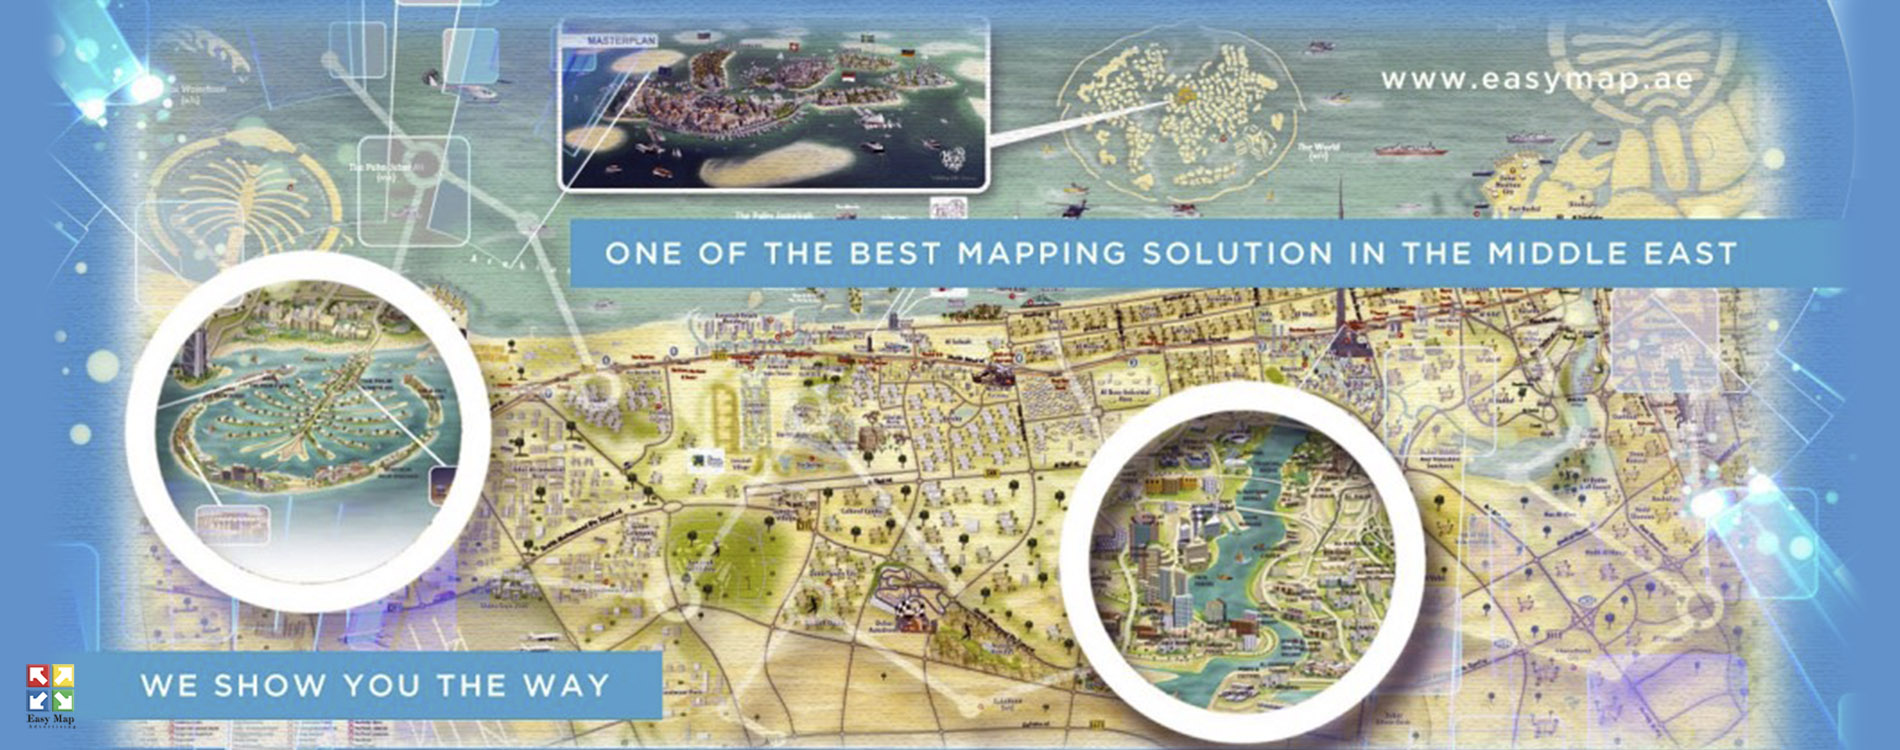 Easy map uaes largest mapping solution provider gccs most easy map uaes largest mapping solution provider gccs most trusted mapping solution and advertising partners gumiabroncs Image collections